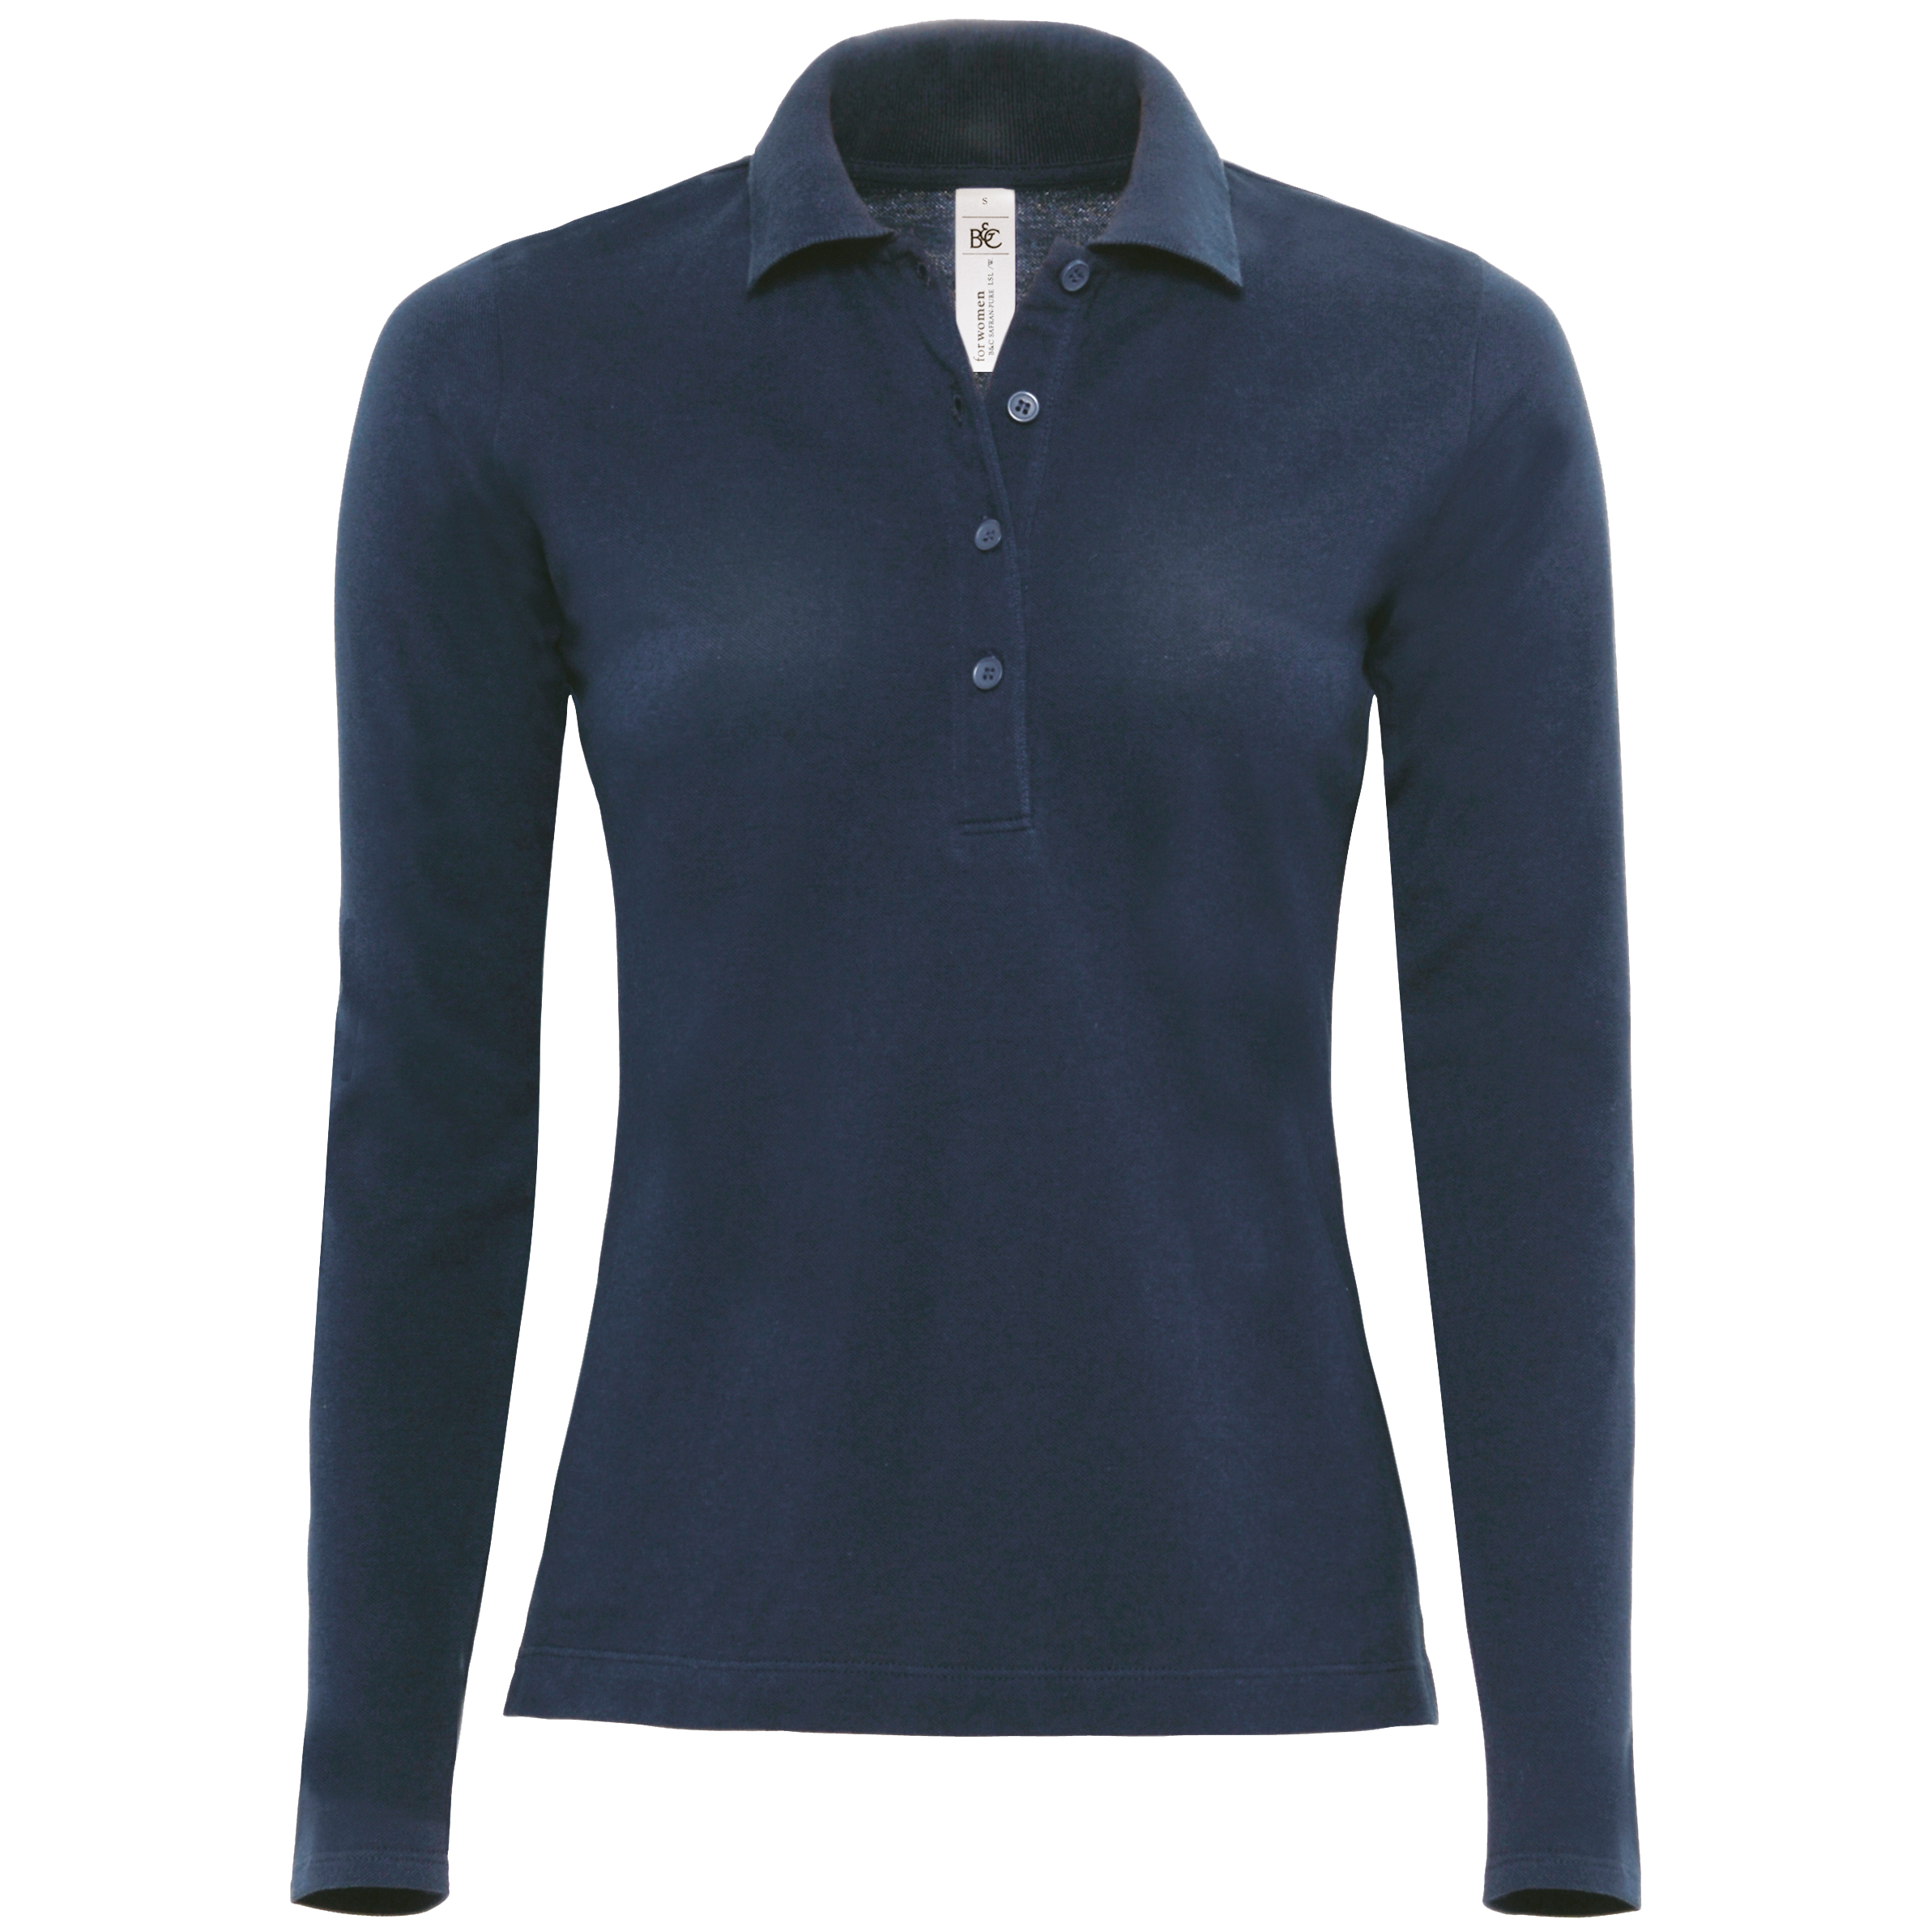 B C Womens Ladies Safran Long Sleeve Polo Shirt Top 5